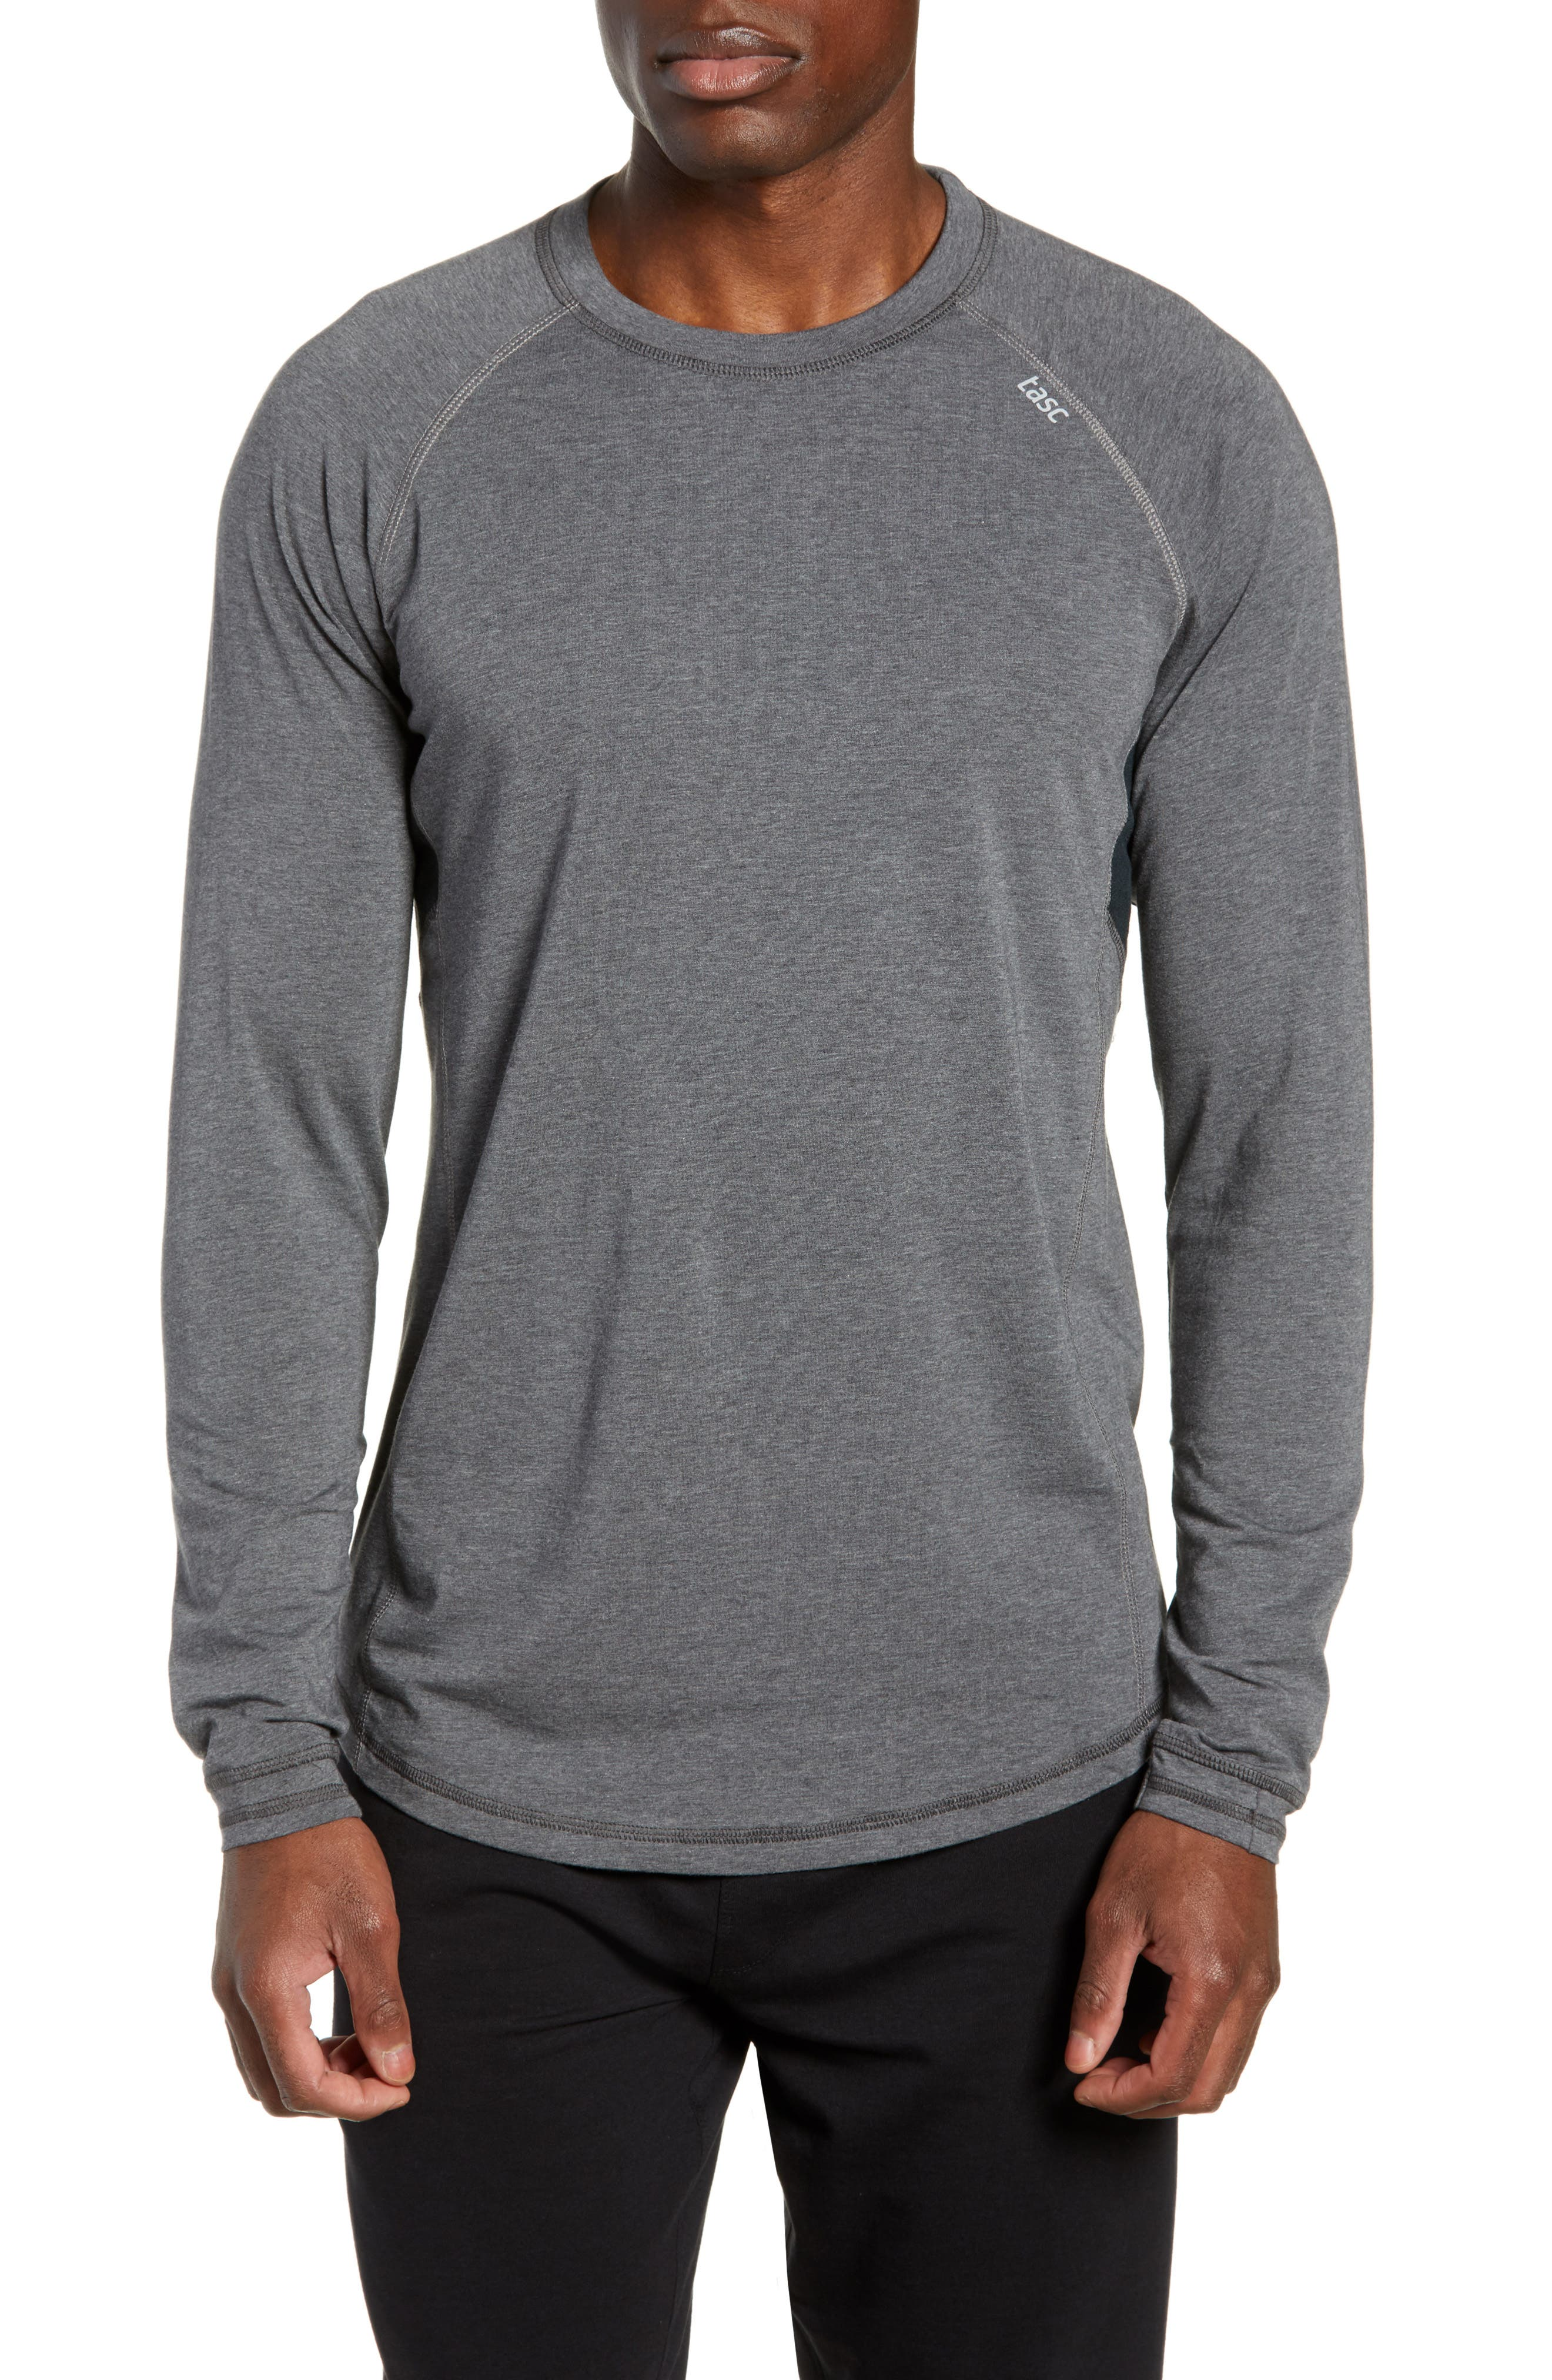 TASC PERFORMANCE, Charge II Long Sleeve Shirt, Main thumbnail 1, color, BLACK HEATHER